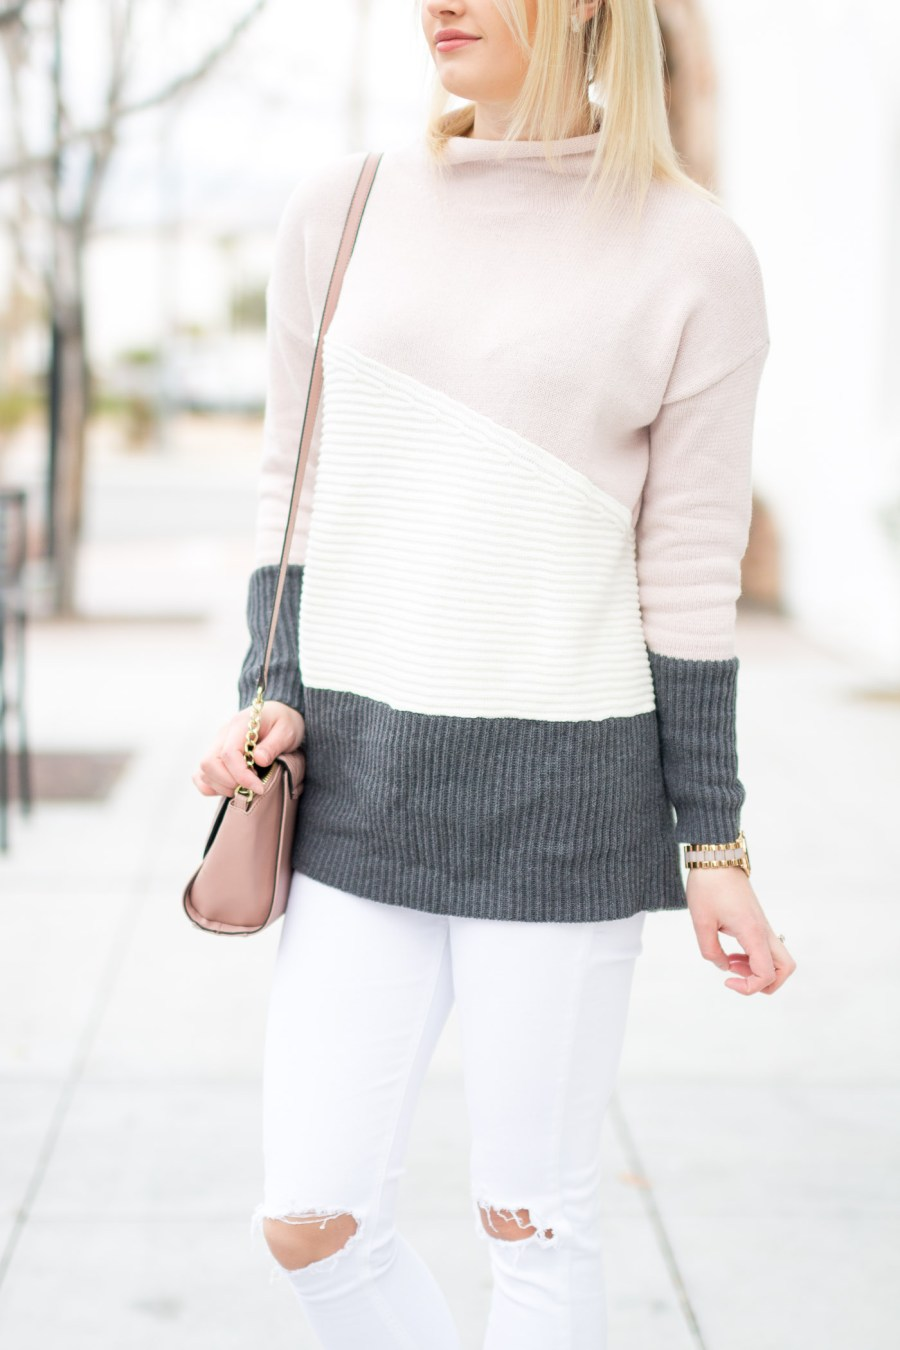 Soft Neutral Colors for Winter, fashion blog, Treats and Trends, color-block sweater, blush, winter outfit idea